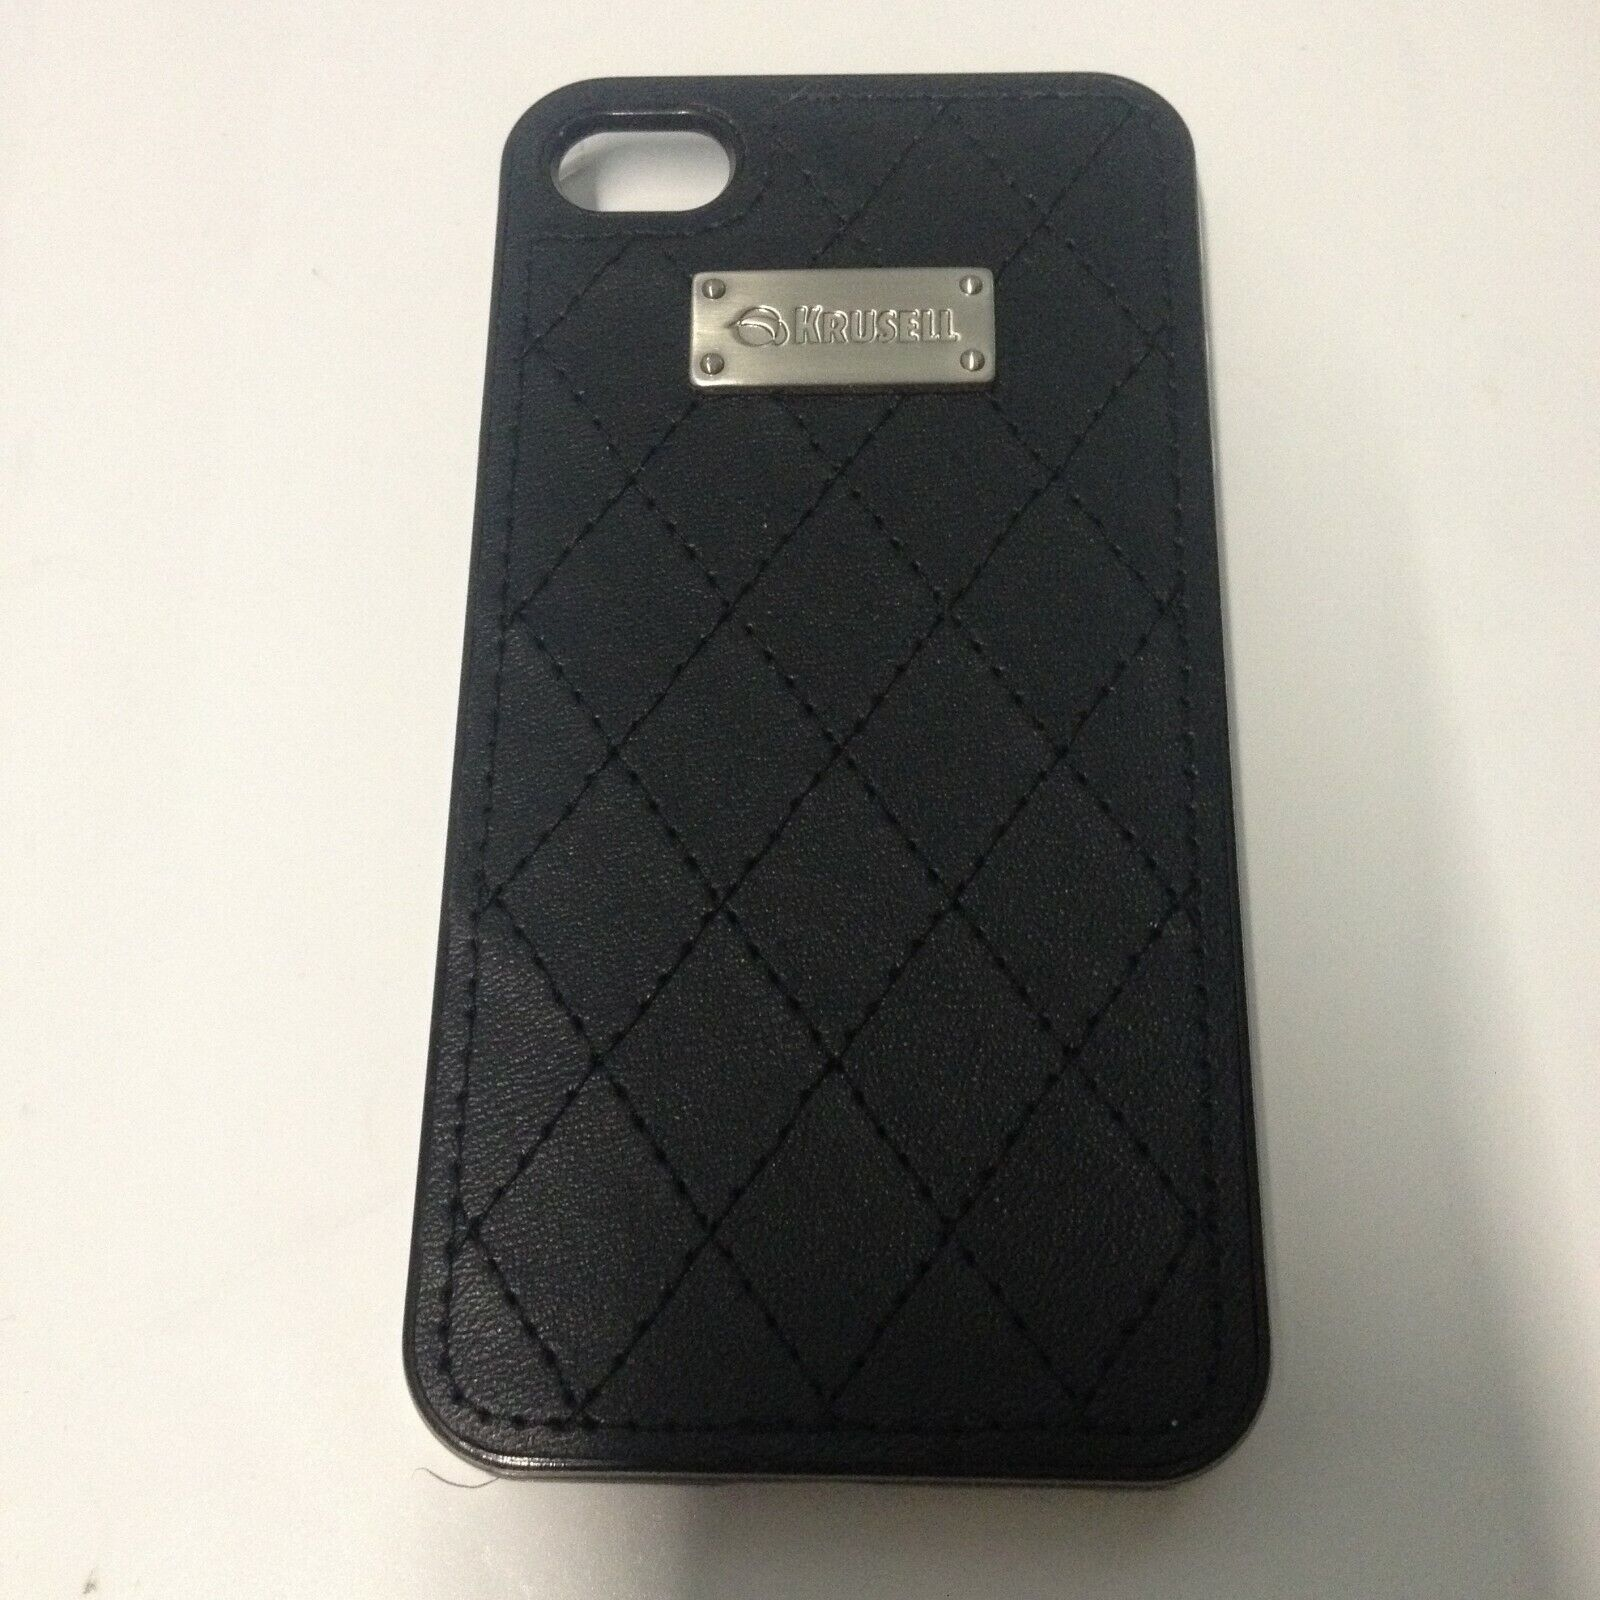 Krusell Coco Undercover iPhone 4 Case - Black-89515-